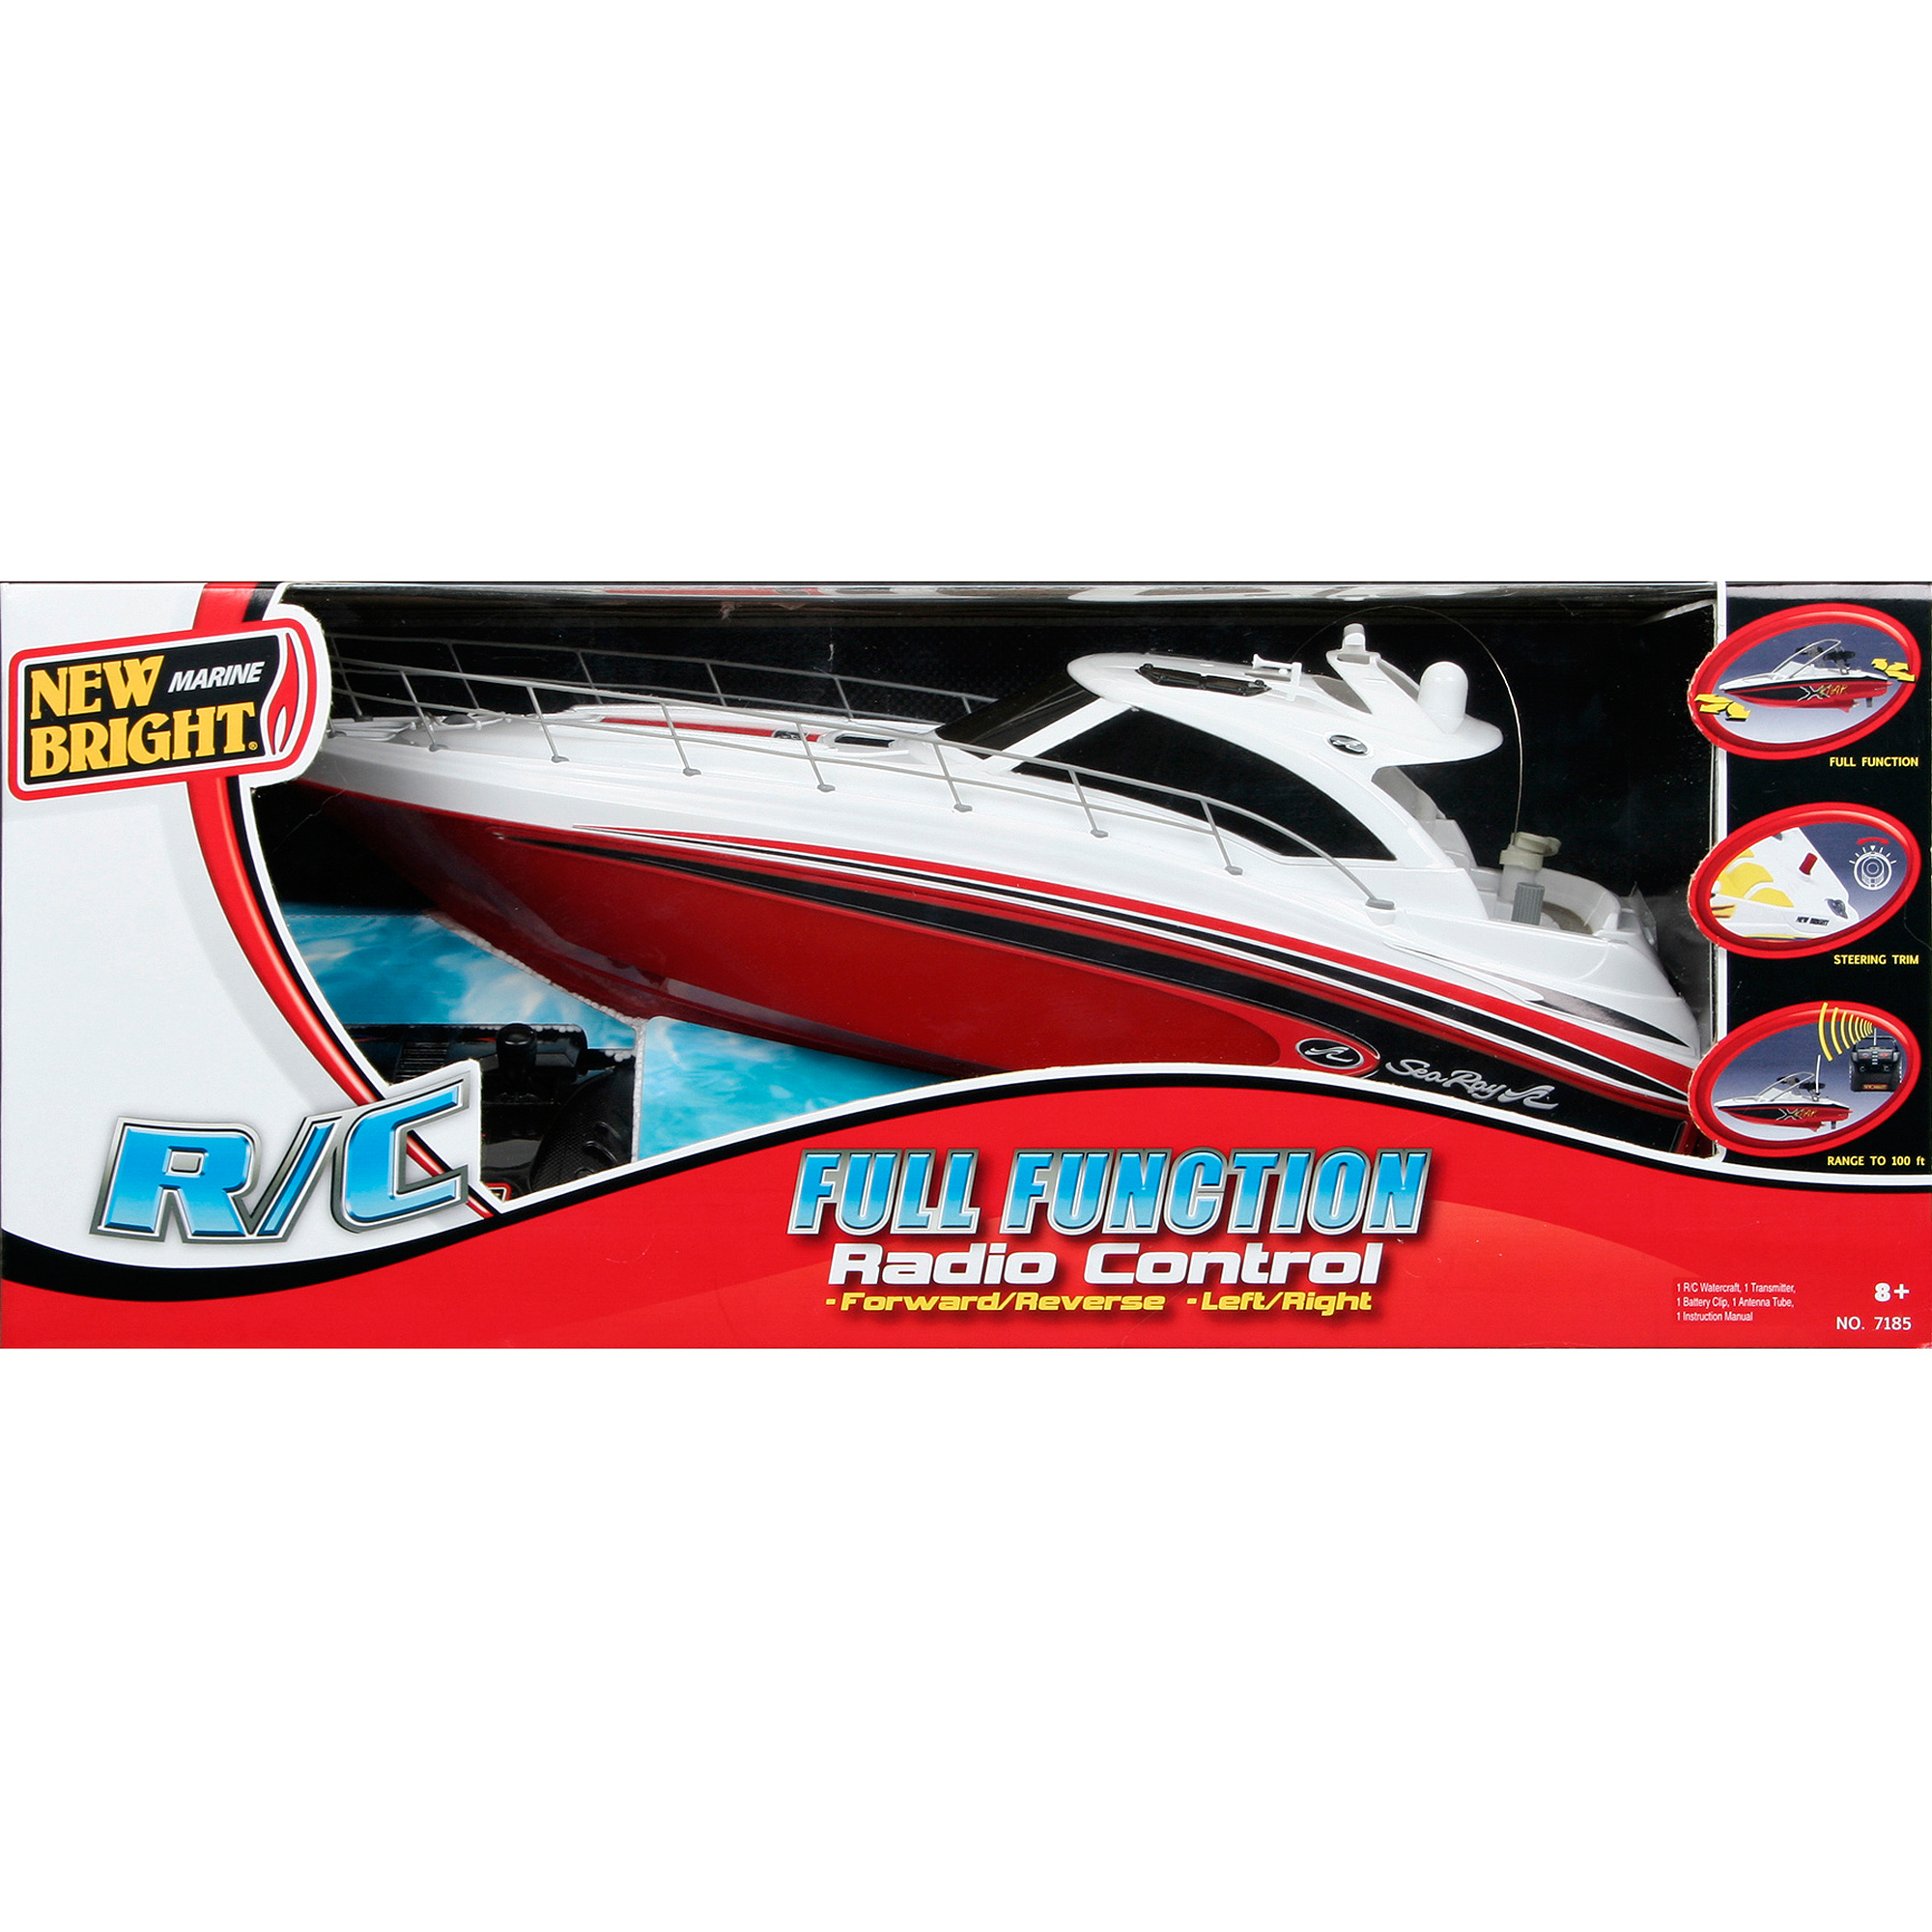 """New Bright 18"""" Radio Control Full-Function Sea Ray Boat, Red by New Bright"""